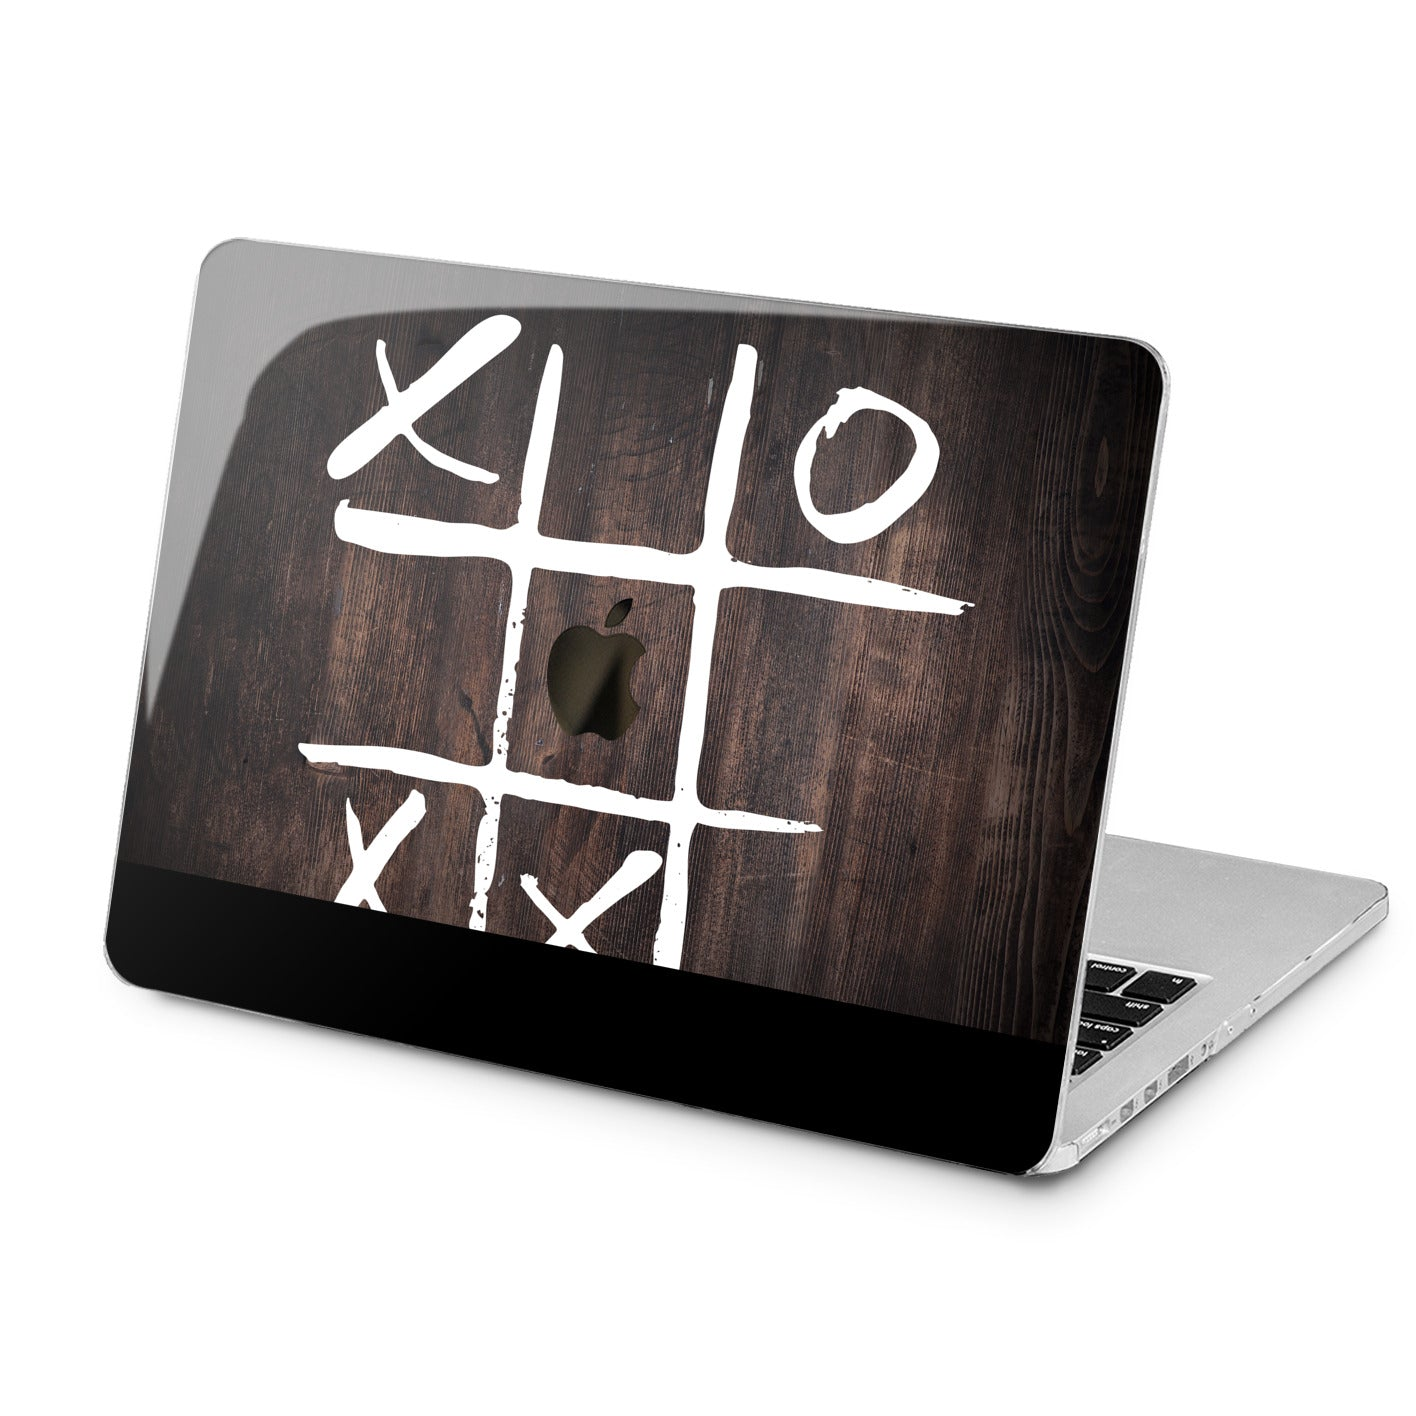 Lex Altern Tic Tac Toe Pattern Case for your Laptop Apple Macbook.